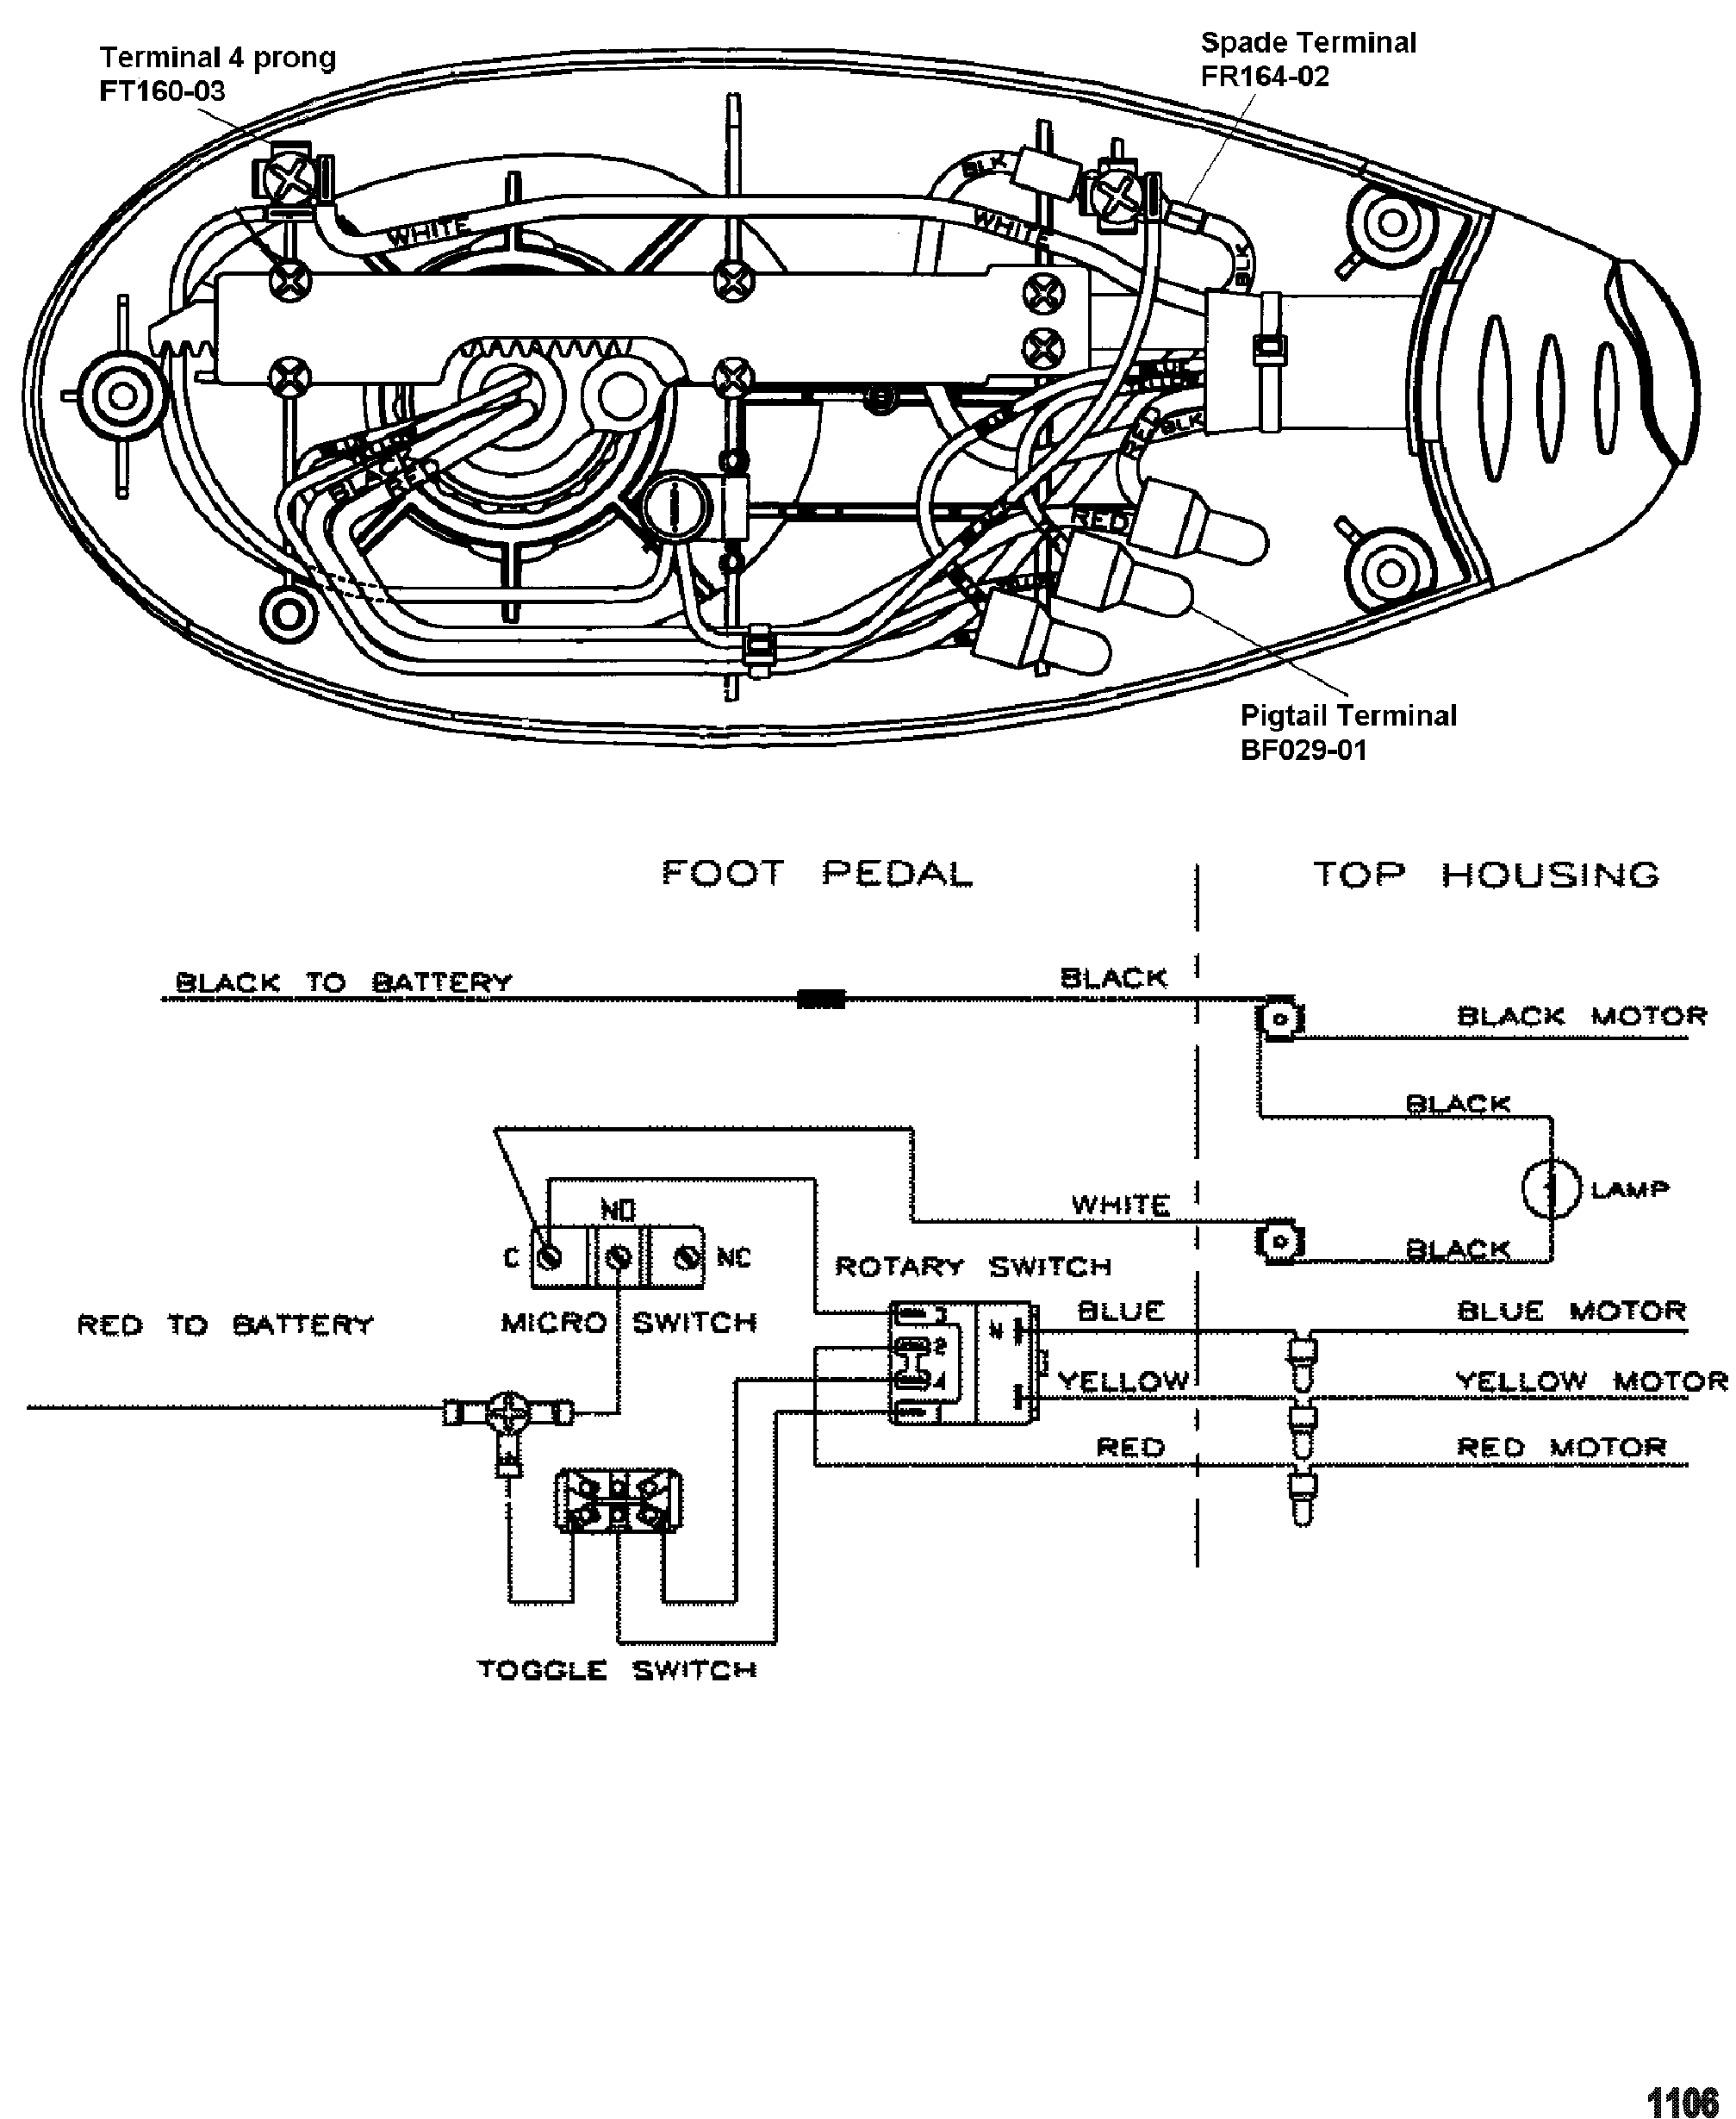 1106 diagrams 600338 motorguide trolling motor wiring diagram motorguide brute 750 wiring diagram at bayanpartner.co